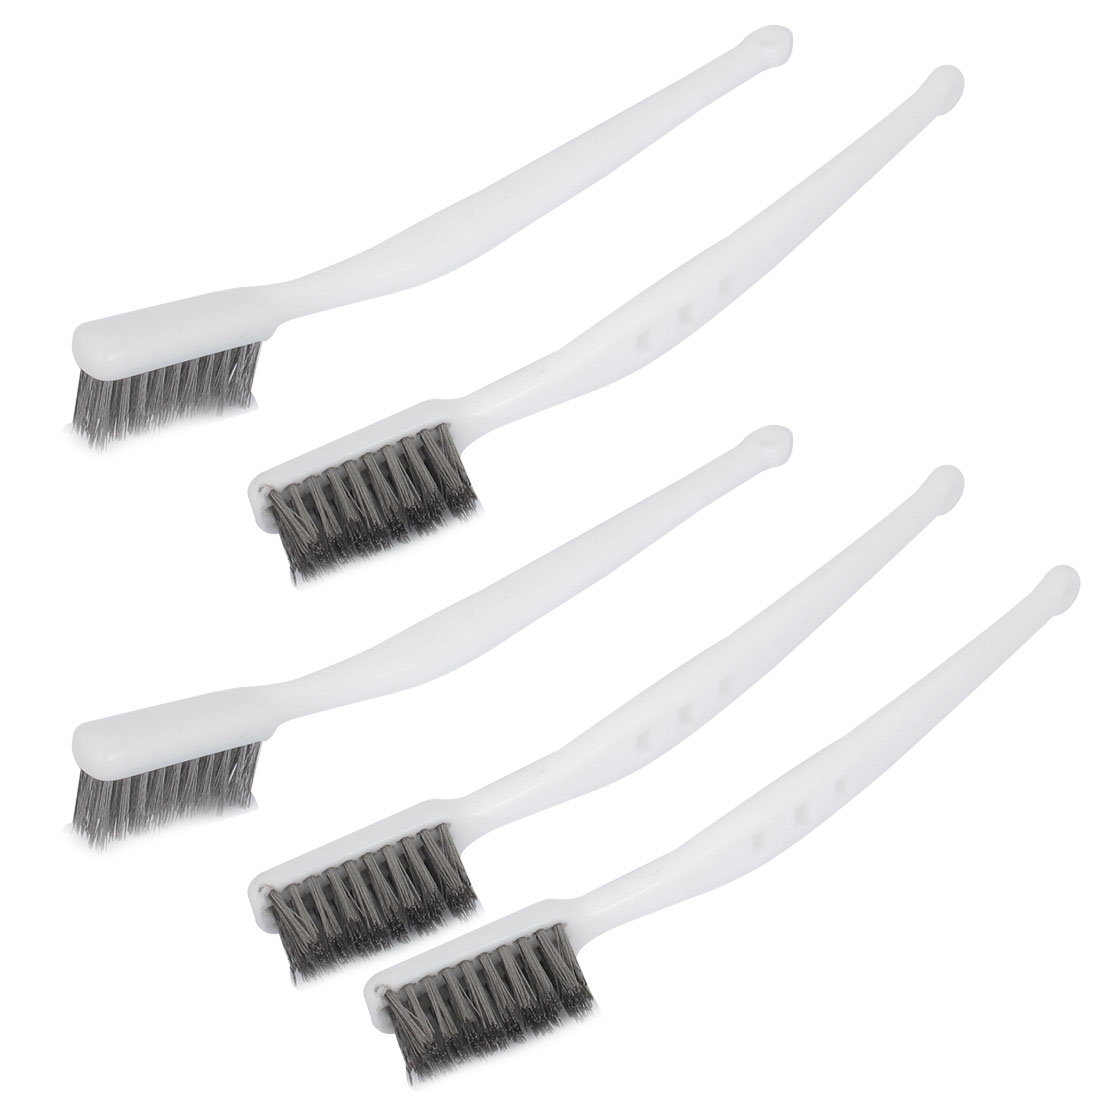 White Plastic Handle Stainless Steel Wire Cleaning Brush 5pcs